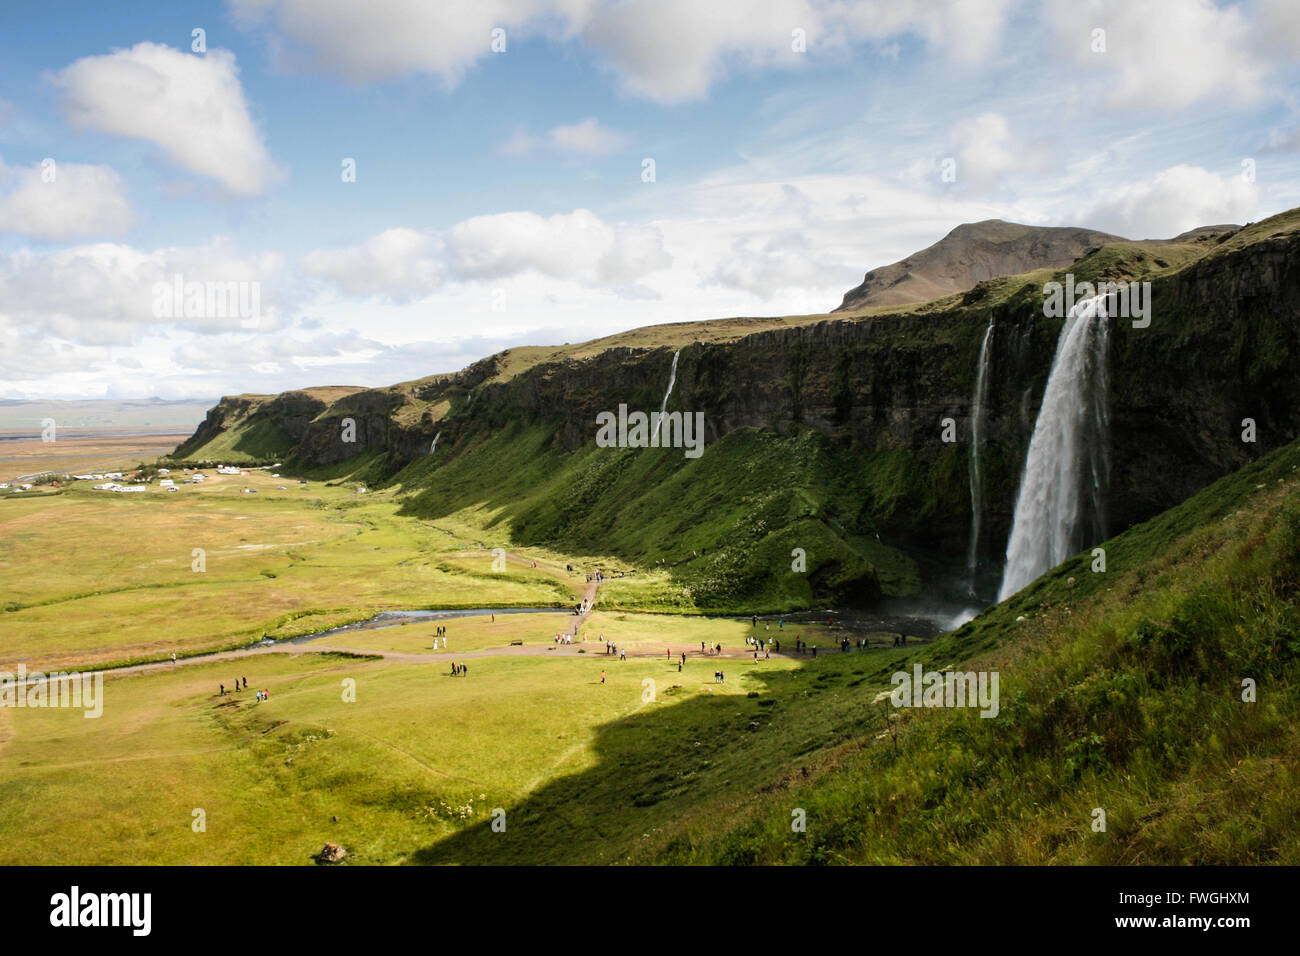 Landscape View With Waterfall - Stock Image